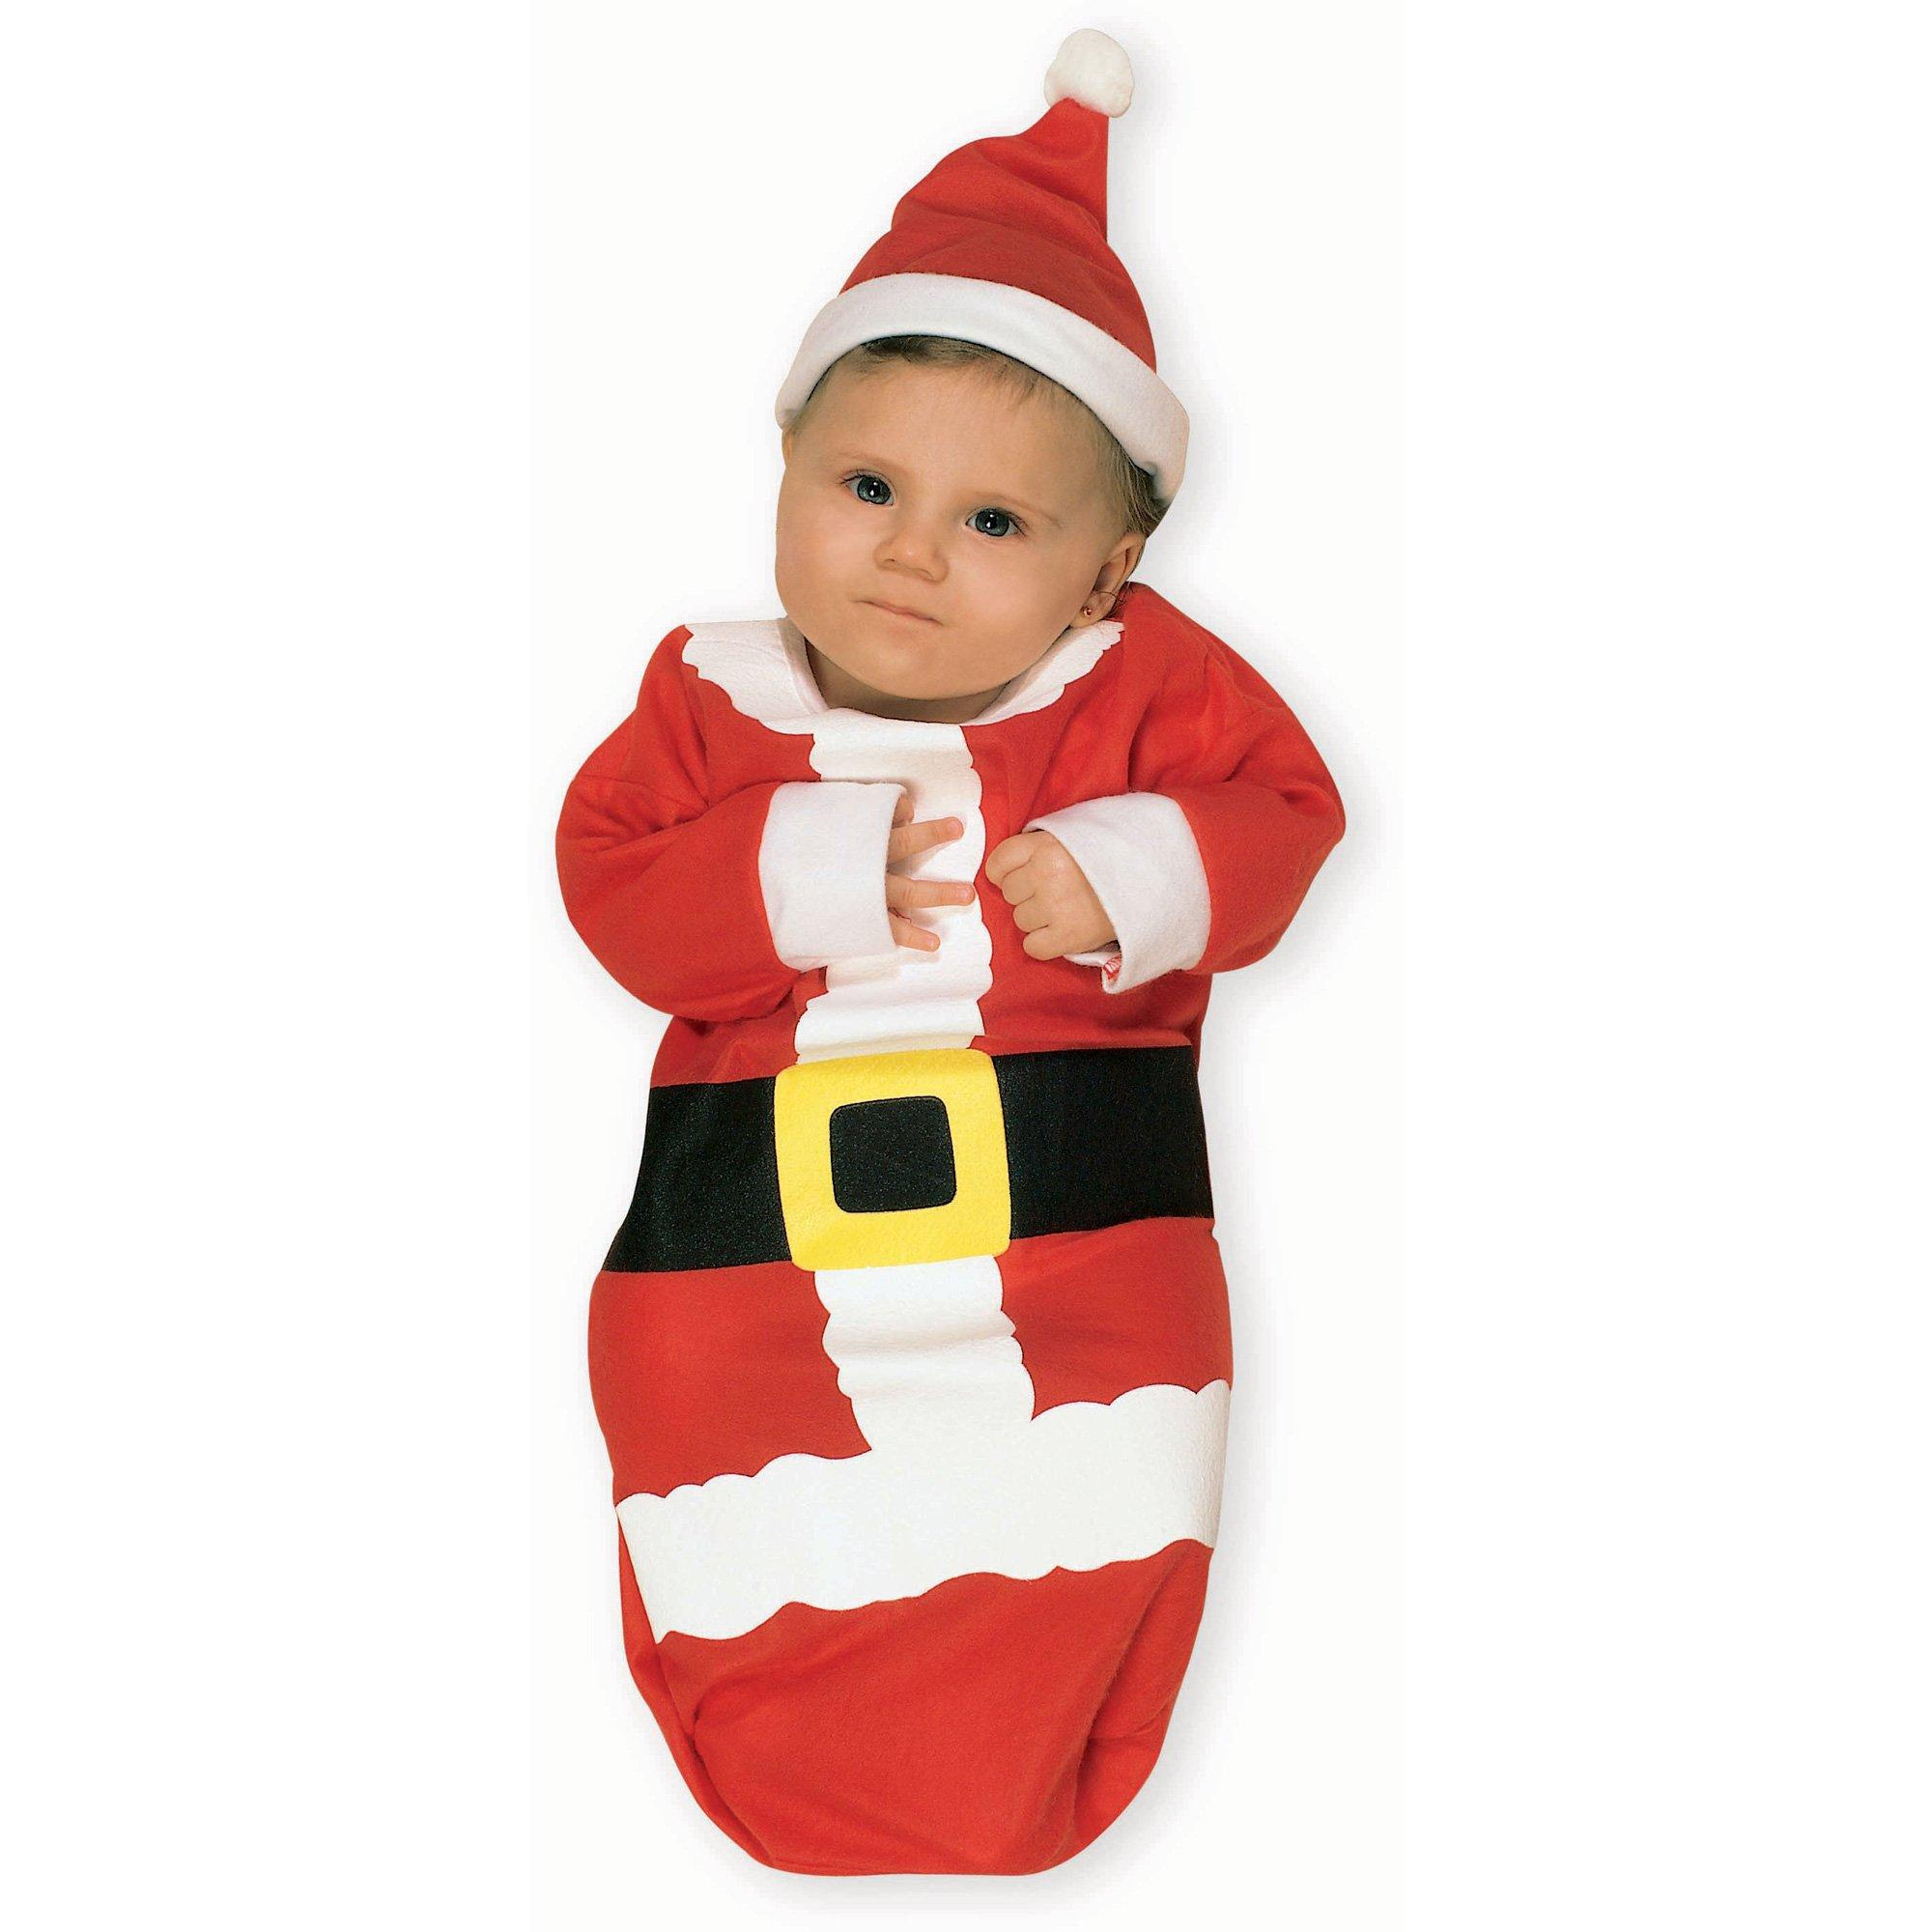 422280f93 Santa Claus Bunting Costume [11062] - HK$198.00 : LET'S PARTY COMPANY